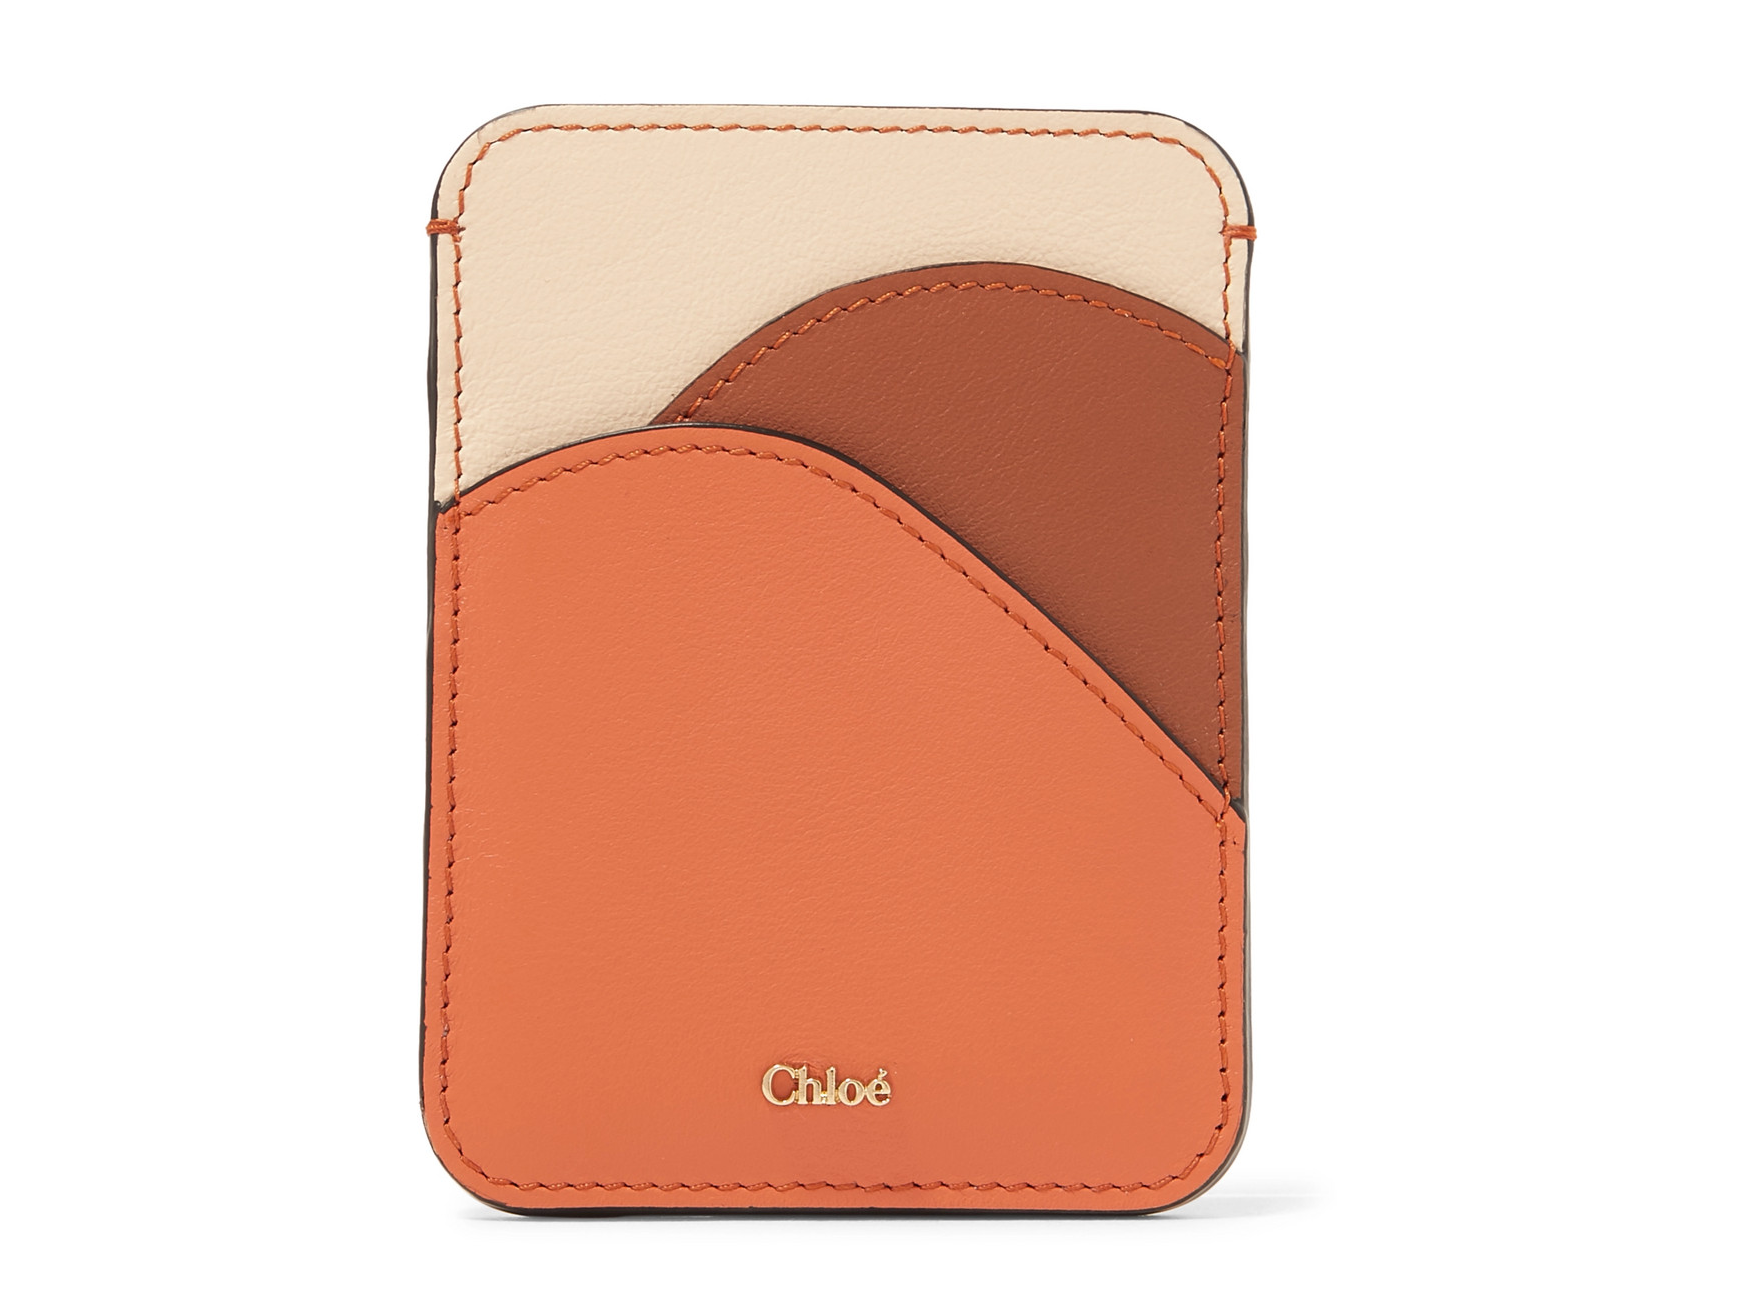 90d618f31dc Best women's wallets, purses and cardholders with pockets, card ...